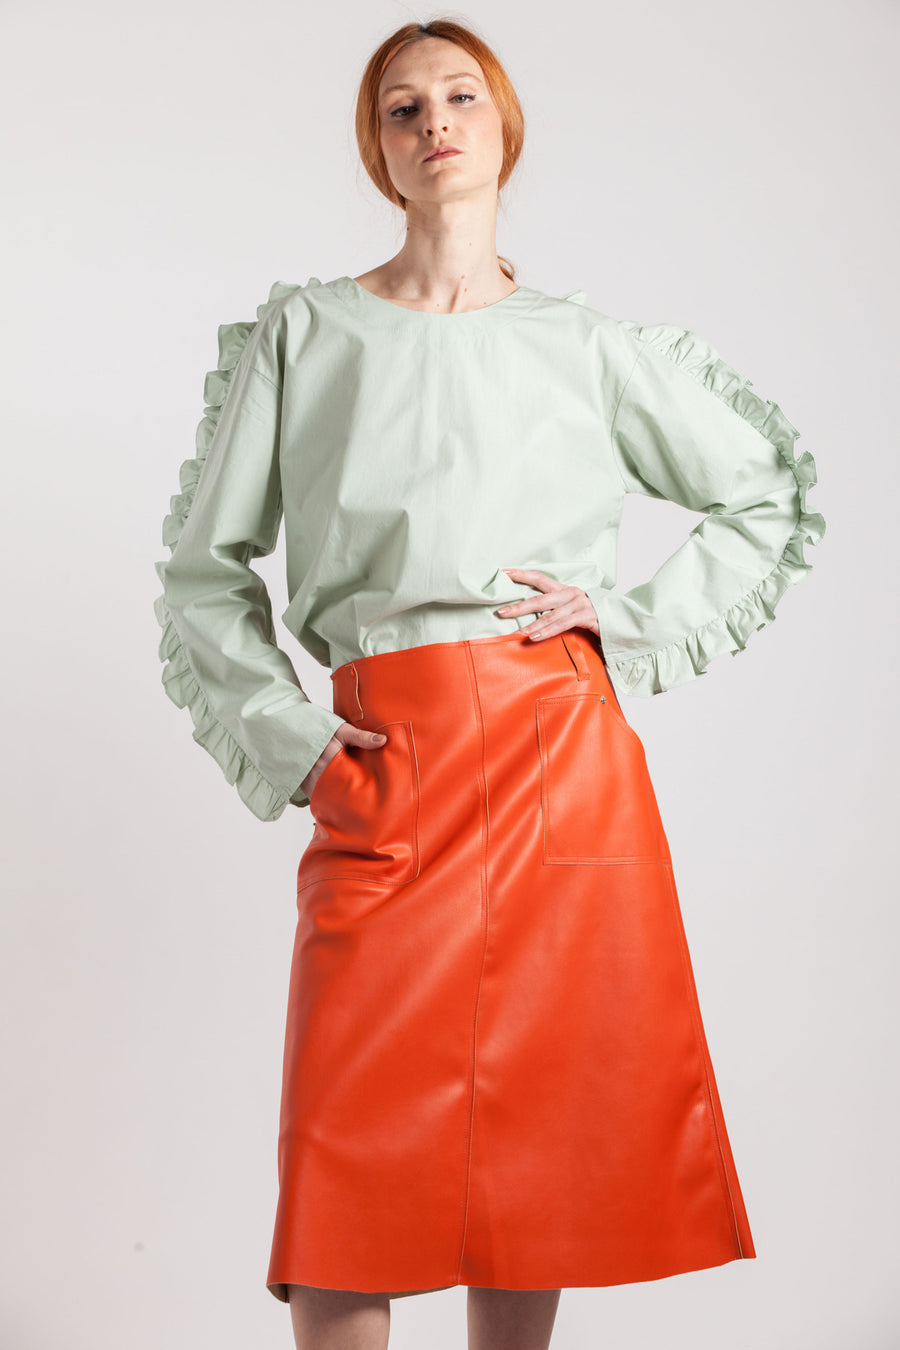 Open-back Frill Shirt - Via Ennji Online Store